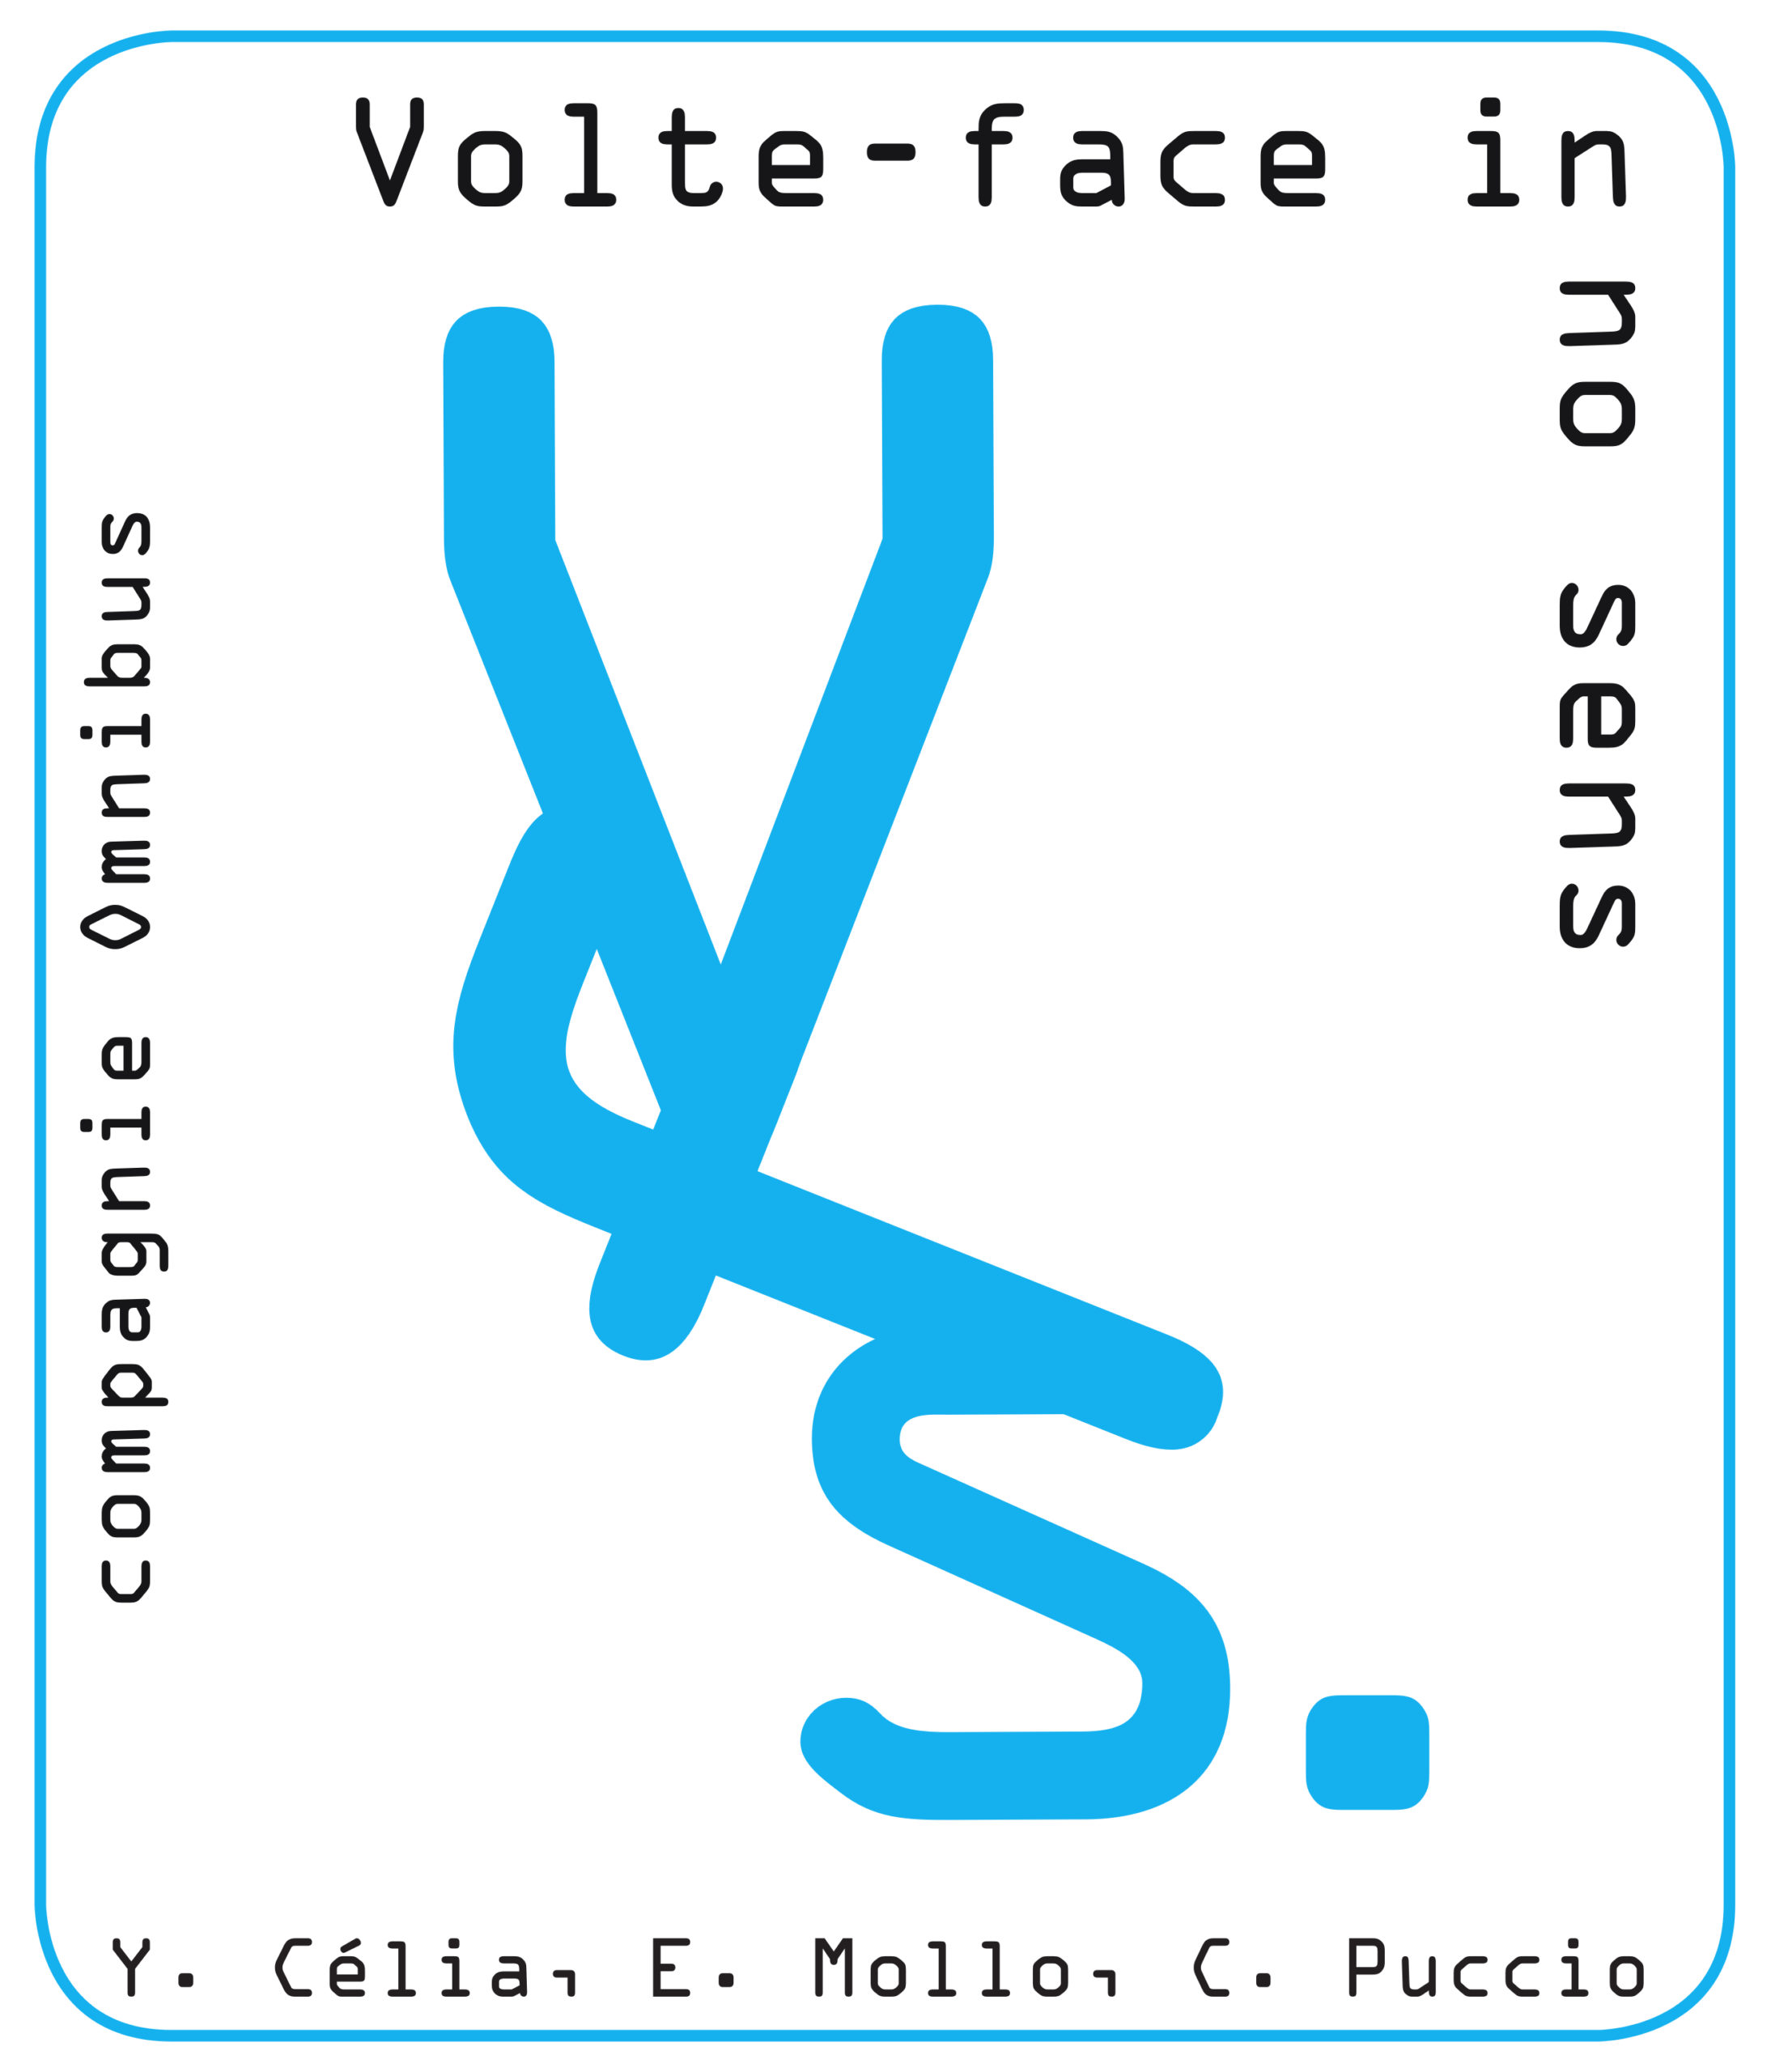 Visuel Volte-face in no sens